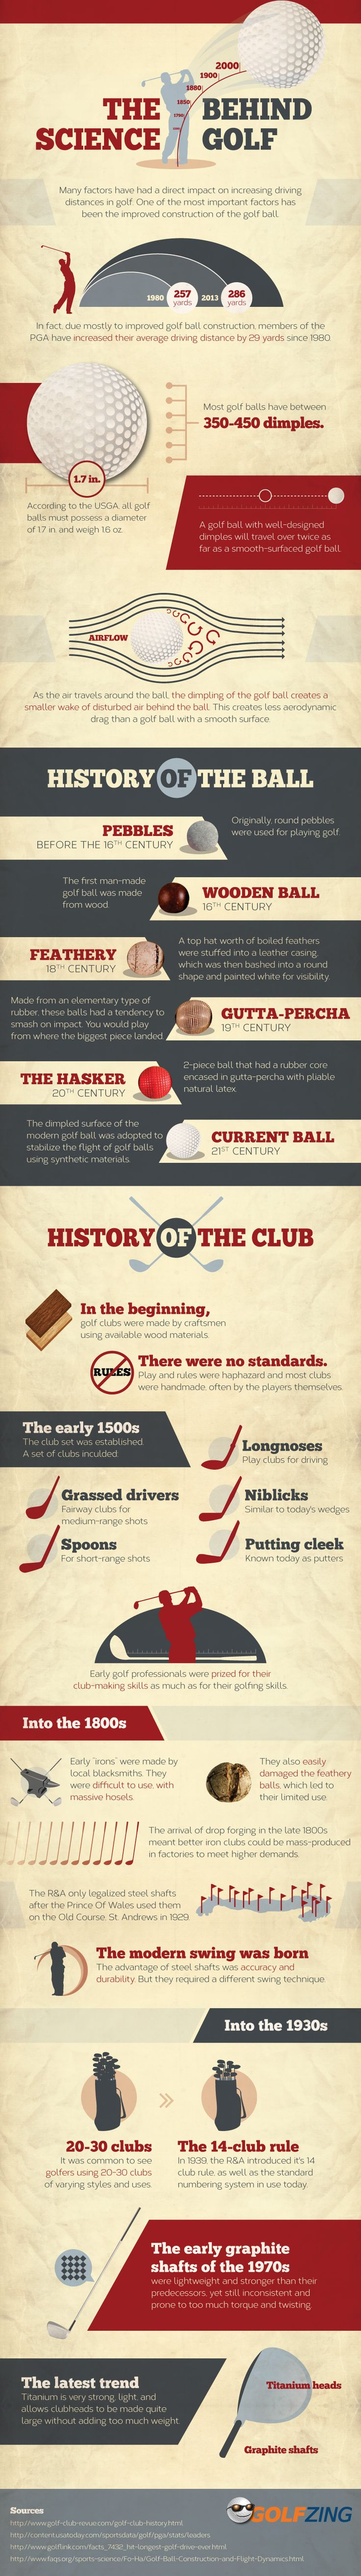 The Science Behind #Golf #Infographic.